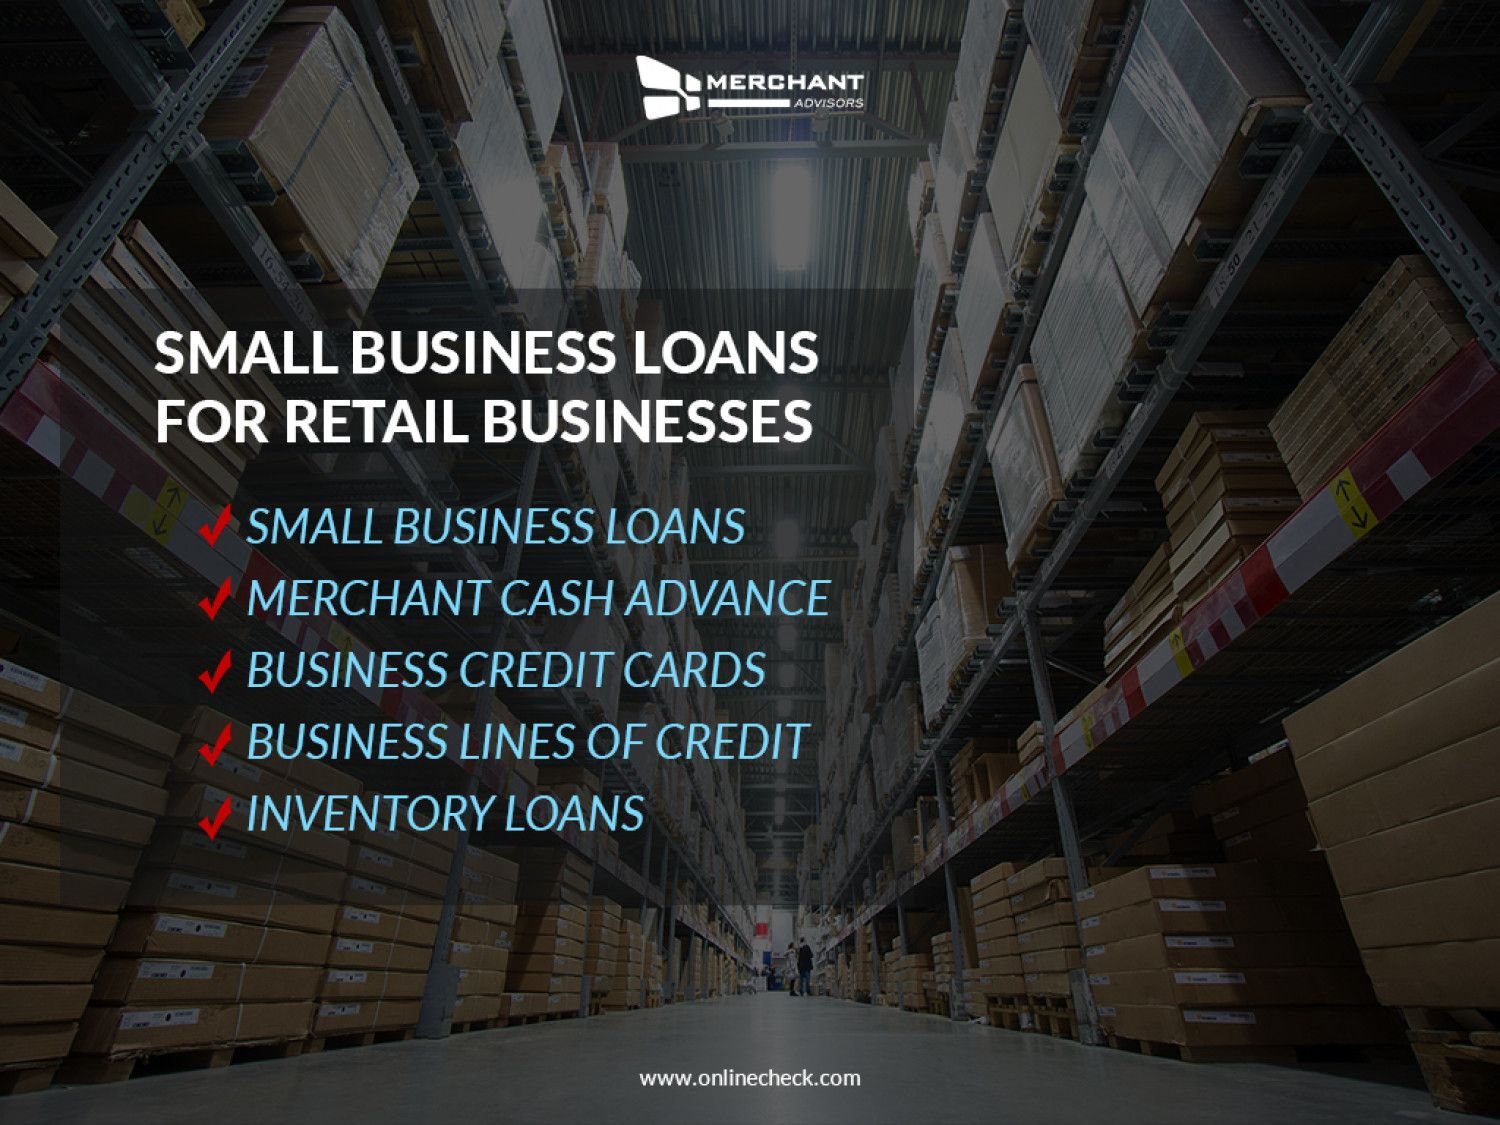 Small Business Loans For Retail Businesses Infographic Business Business Credit Cards Loans For Bad Credit